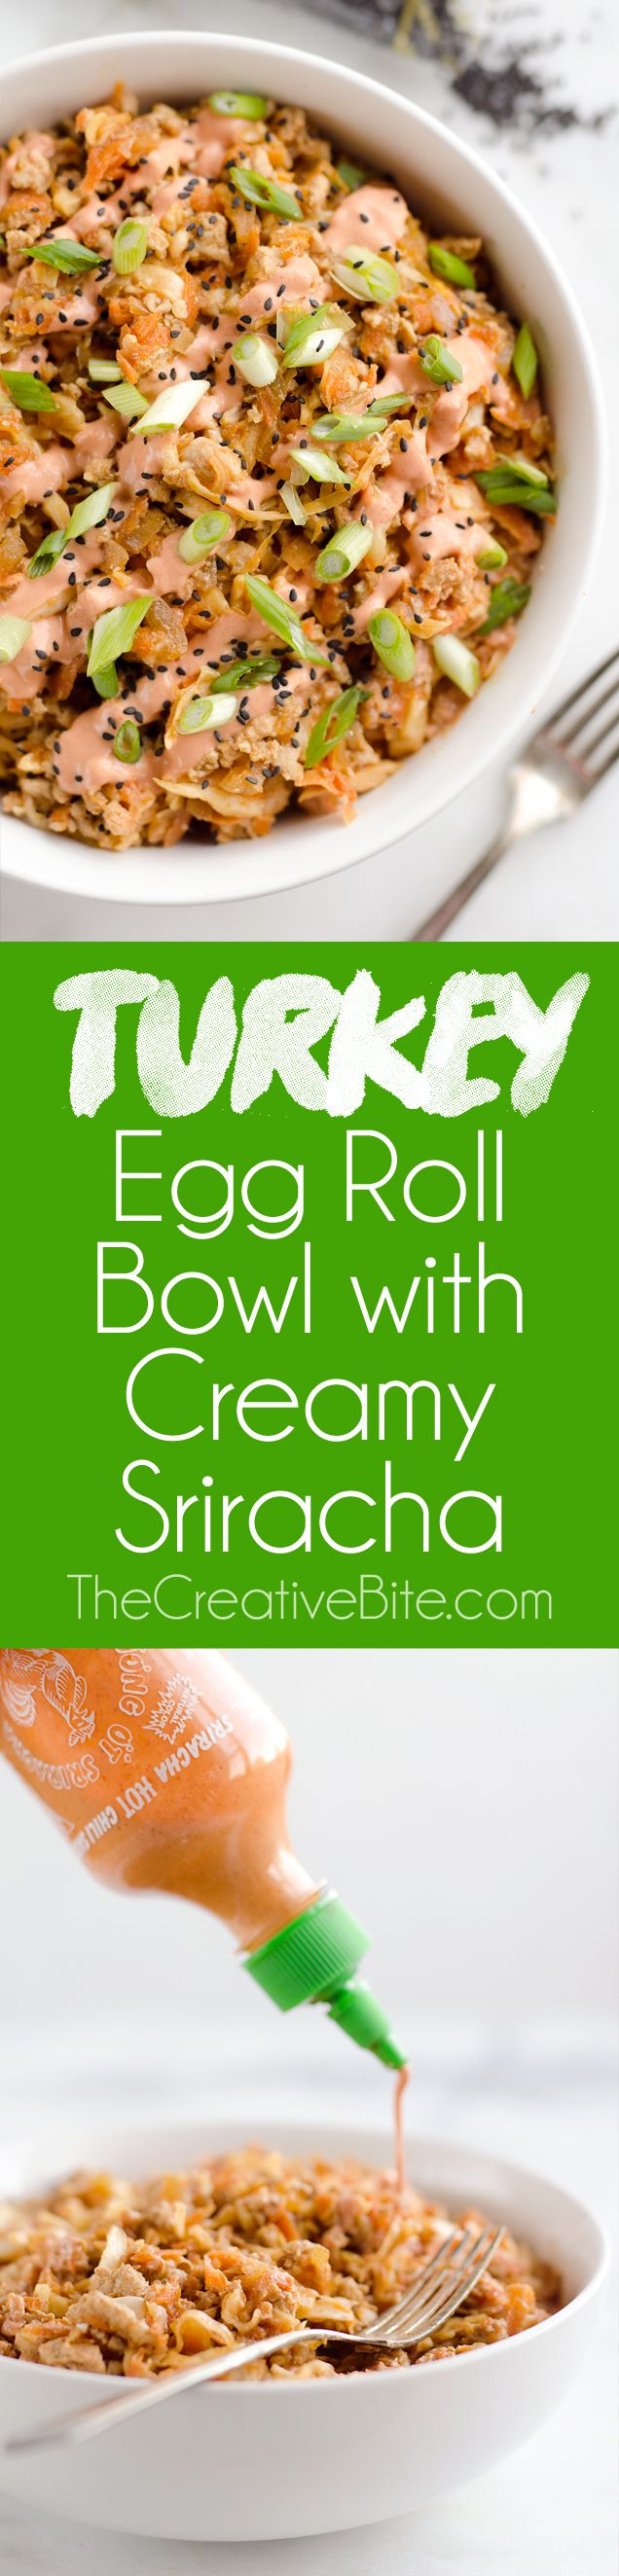 Turkey Egg Roll Bowl with Creamy Sriracha is an amazingly healthy and easy 20 minute bowl of goodness perfect for lunch or dinner! Sauteed cabbage, carrots, onion and ground turkey are tossed with an (Low Carb Dinner Ground Turkey)